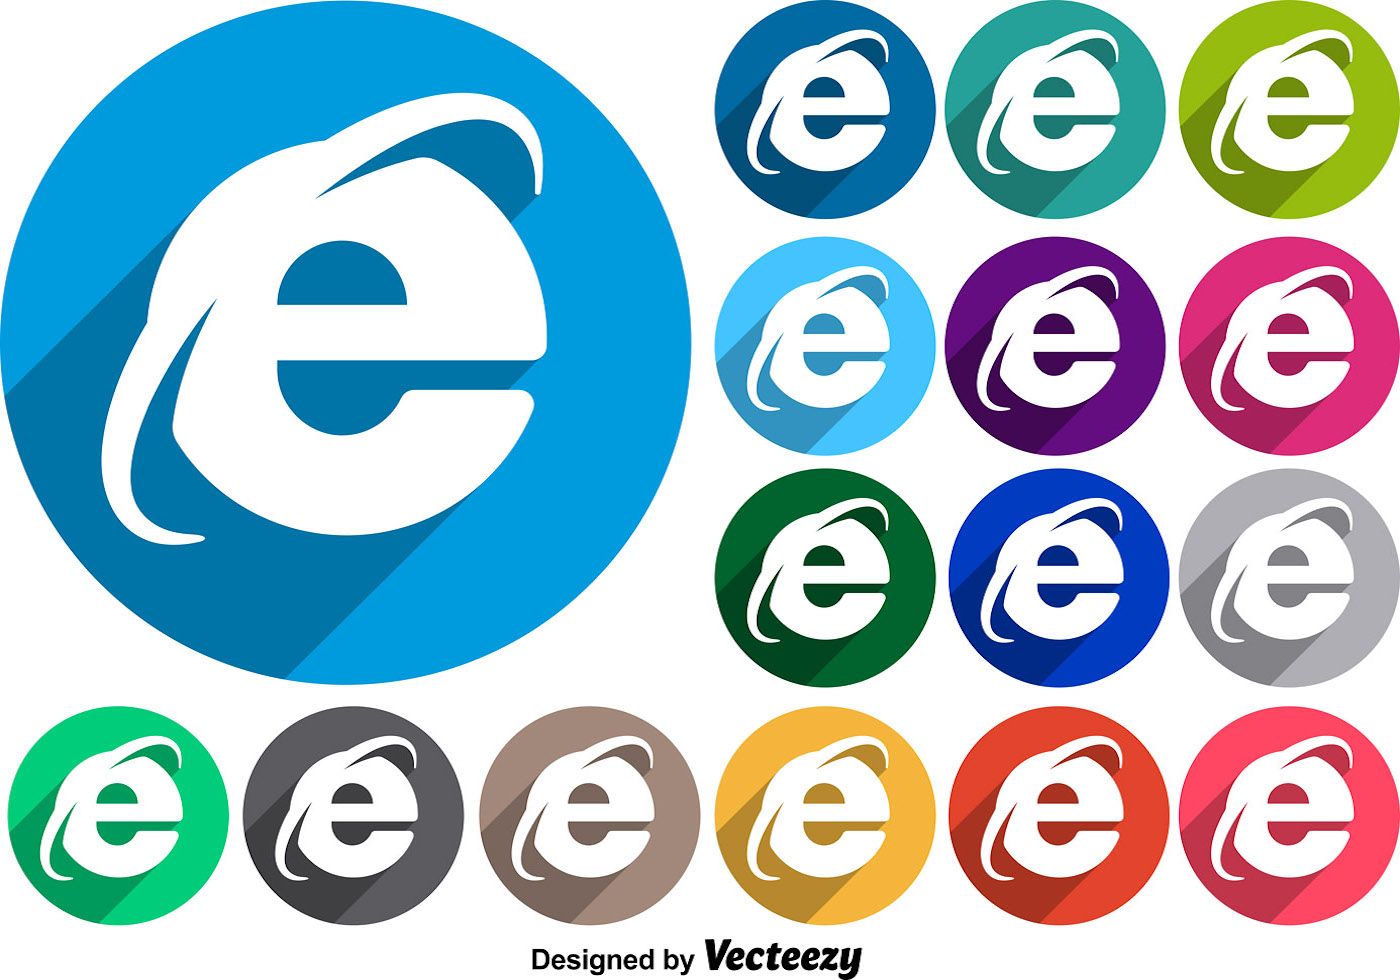 vector-internet-icon-colorful-buttons-with-long-shadows.jpg